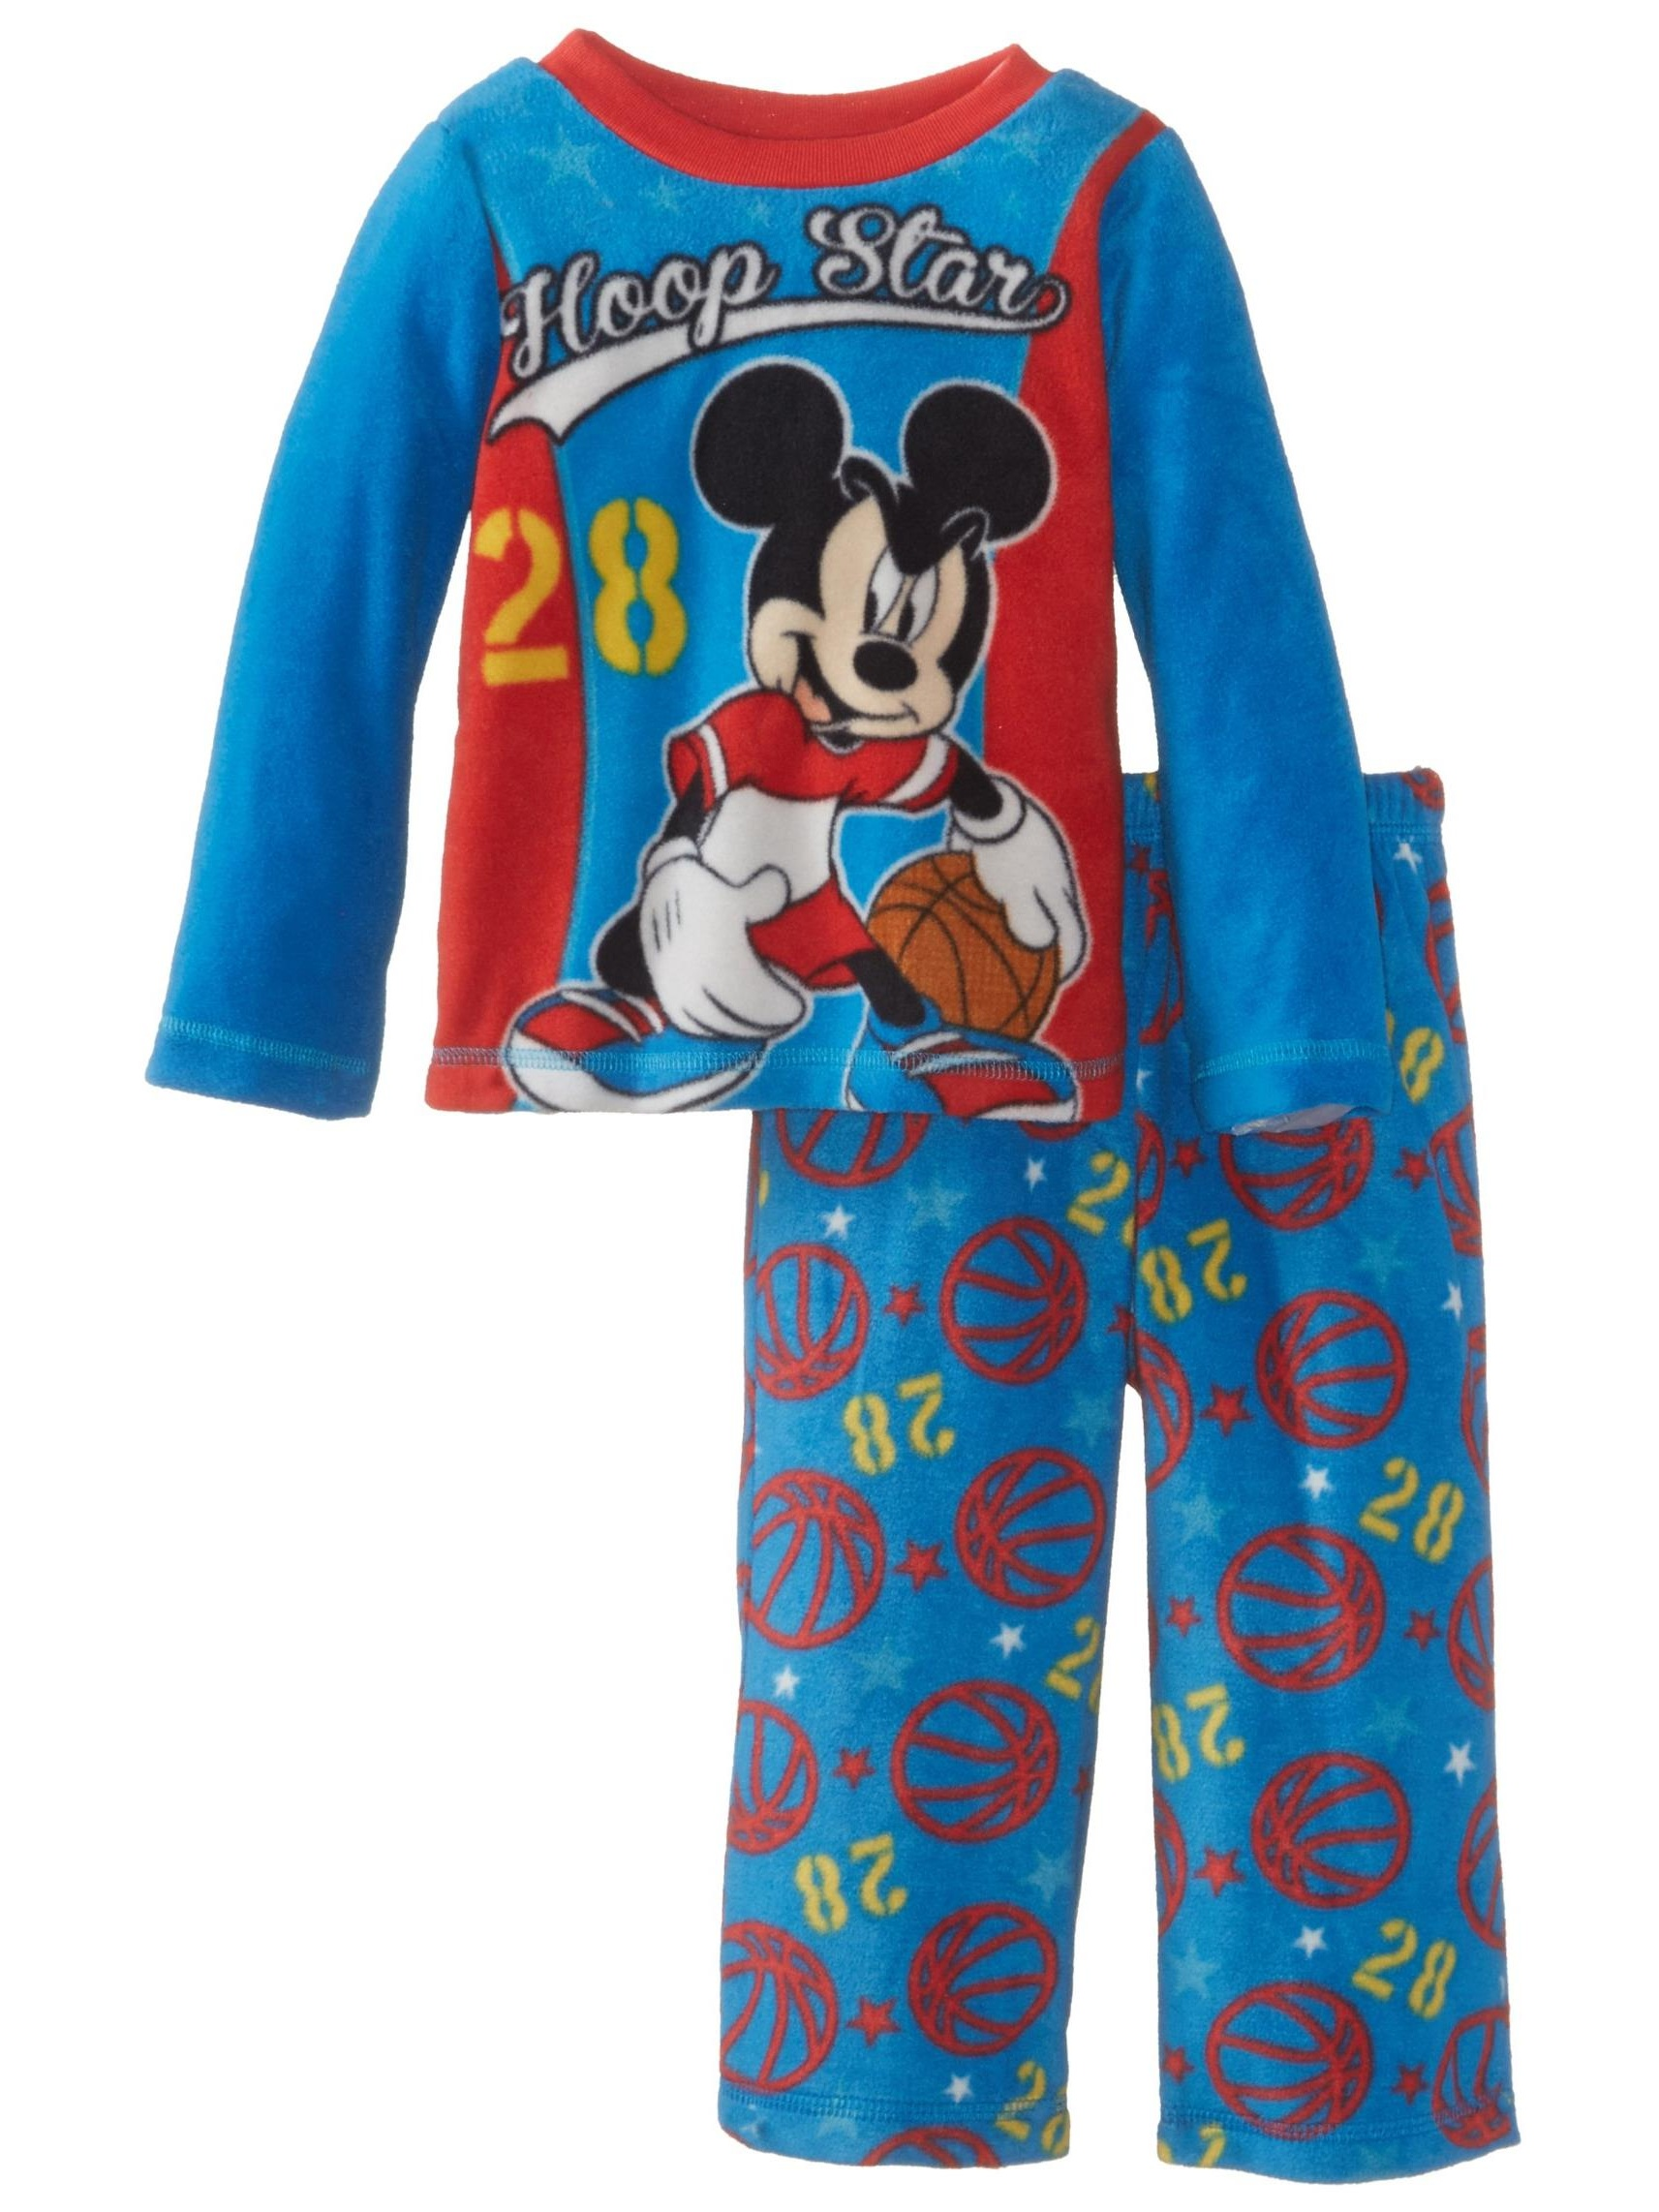 Boys Disney Pajamas Mickey Mouse Blue Sizes 2T 3T /& 4T